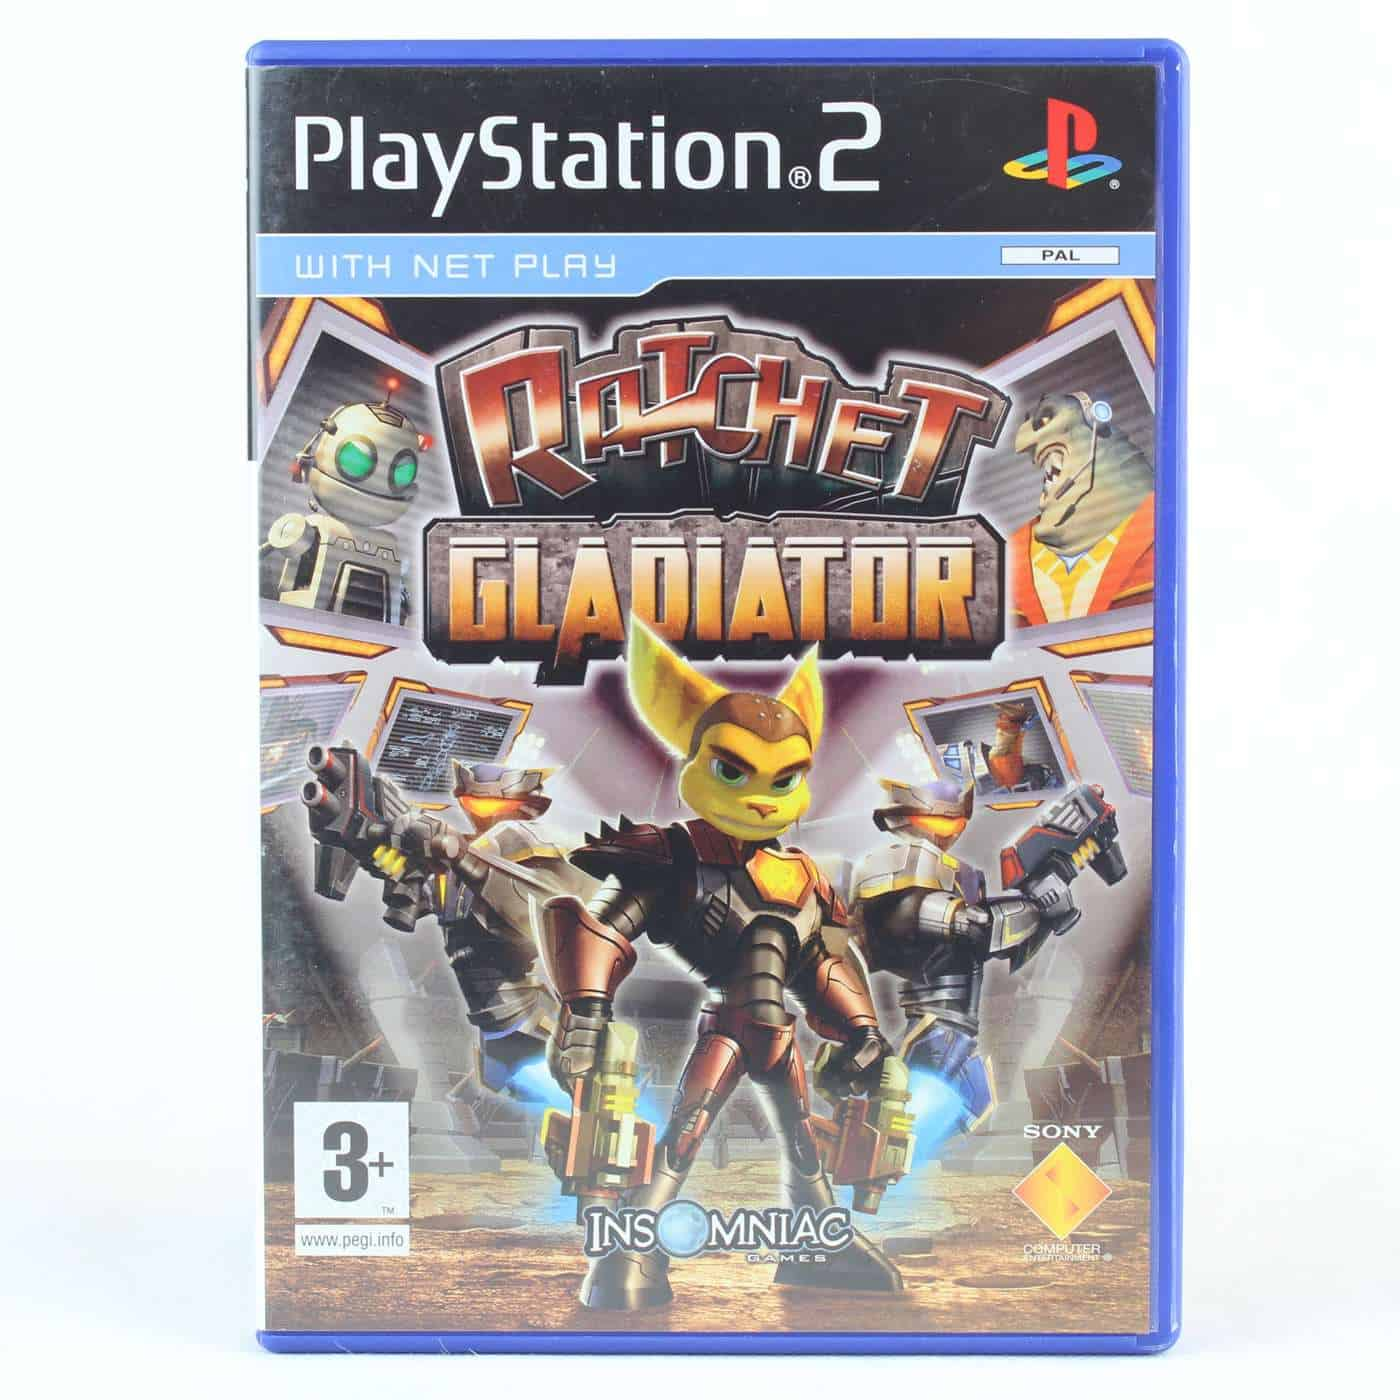 Ratchet: Gladiator (Playstation 2)